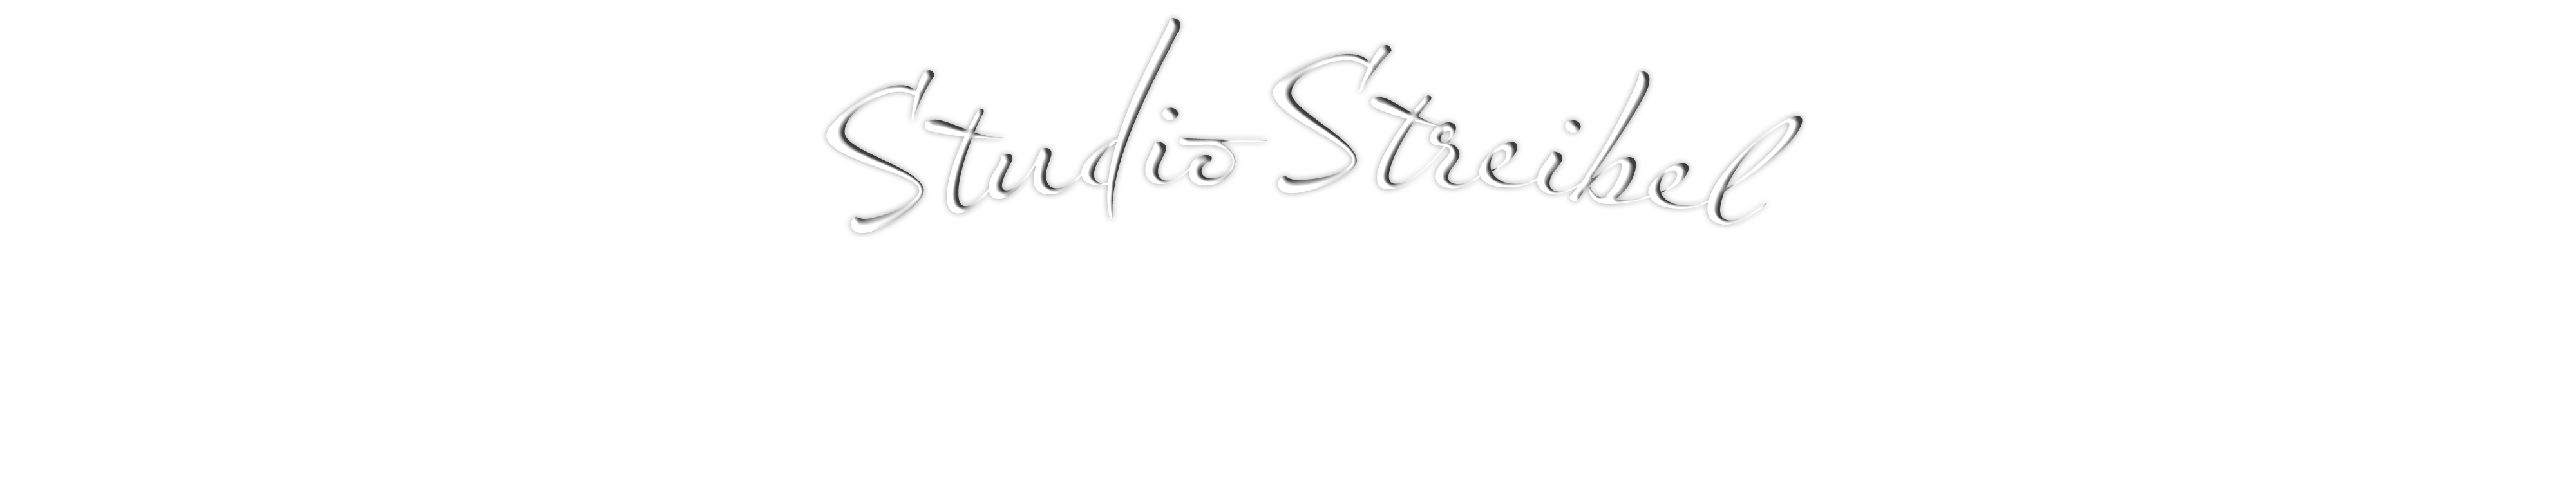 Studio Streibel